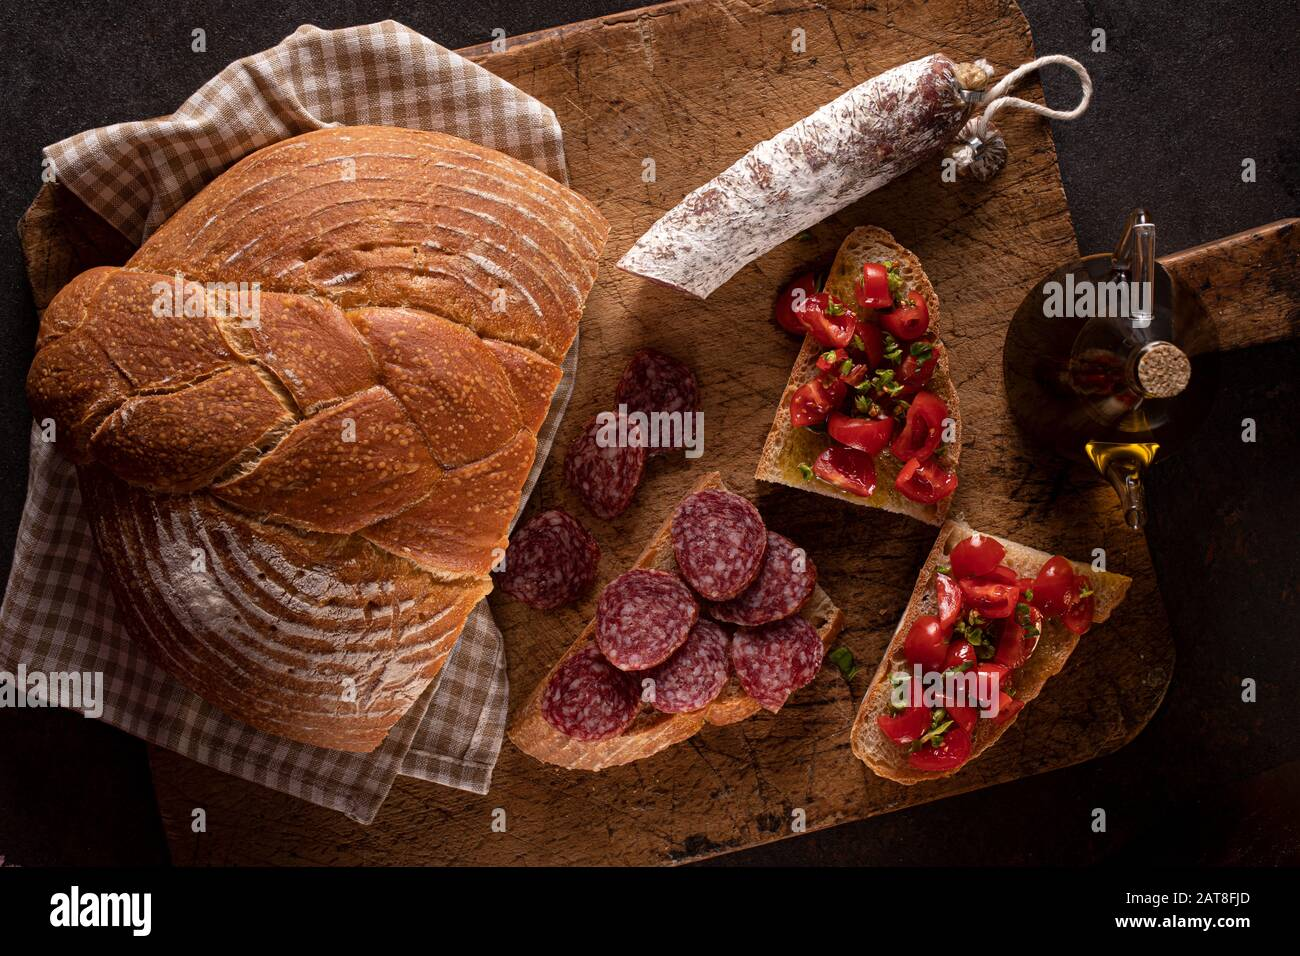 Fresh Homemade Bread With Salami And Bruschetta With Tomato Basil